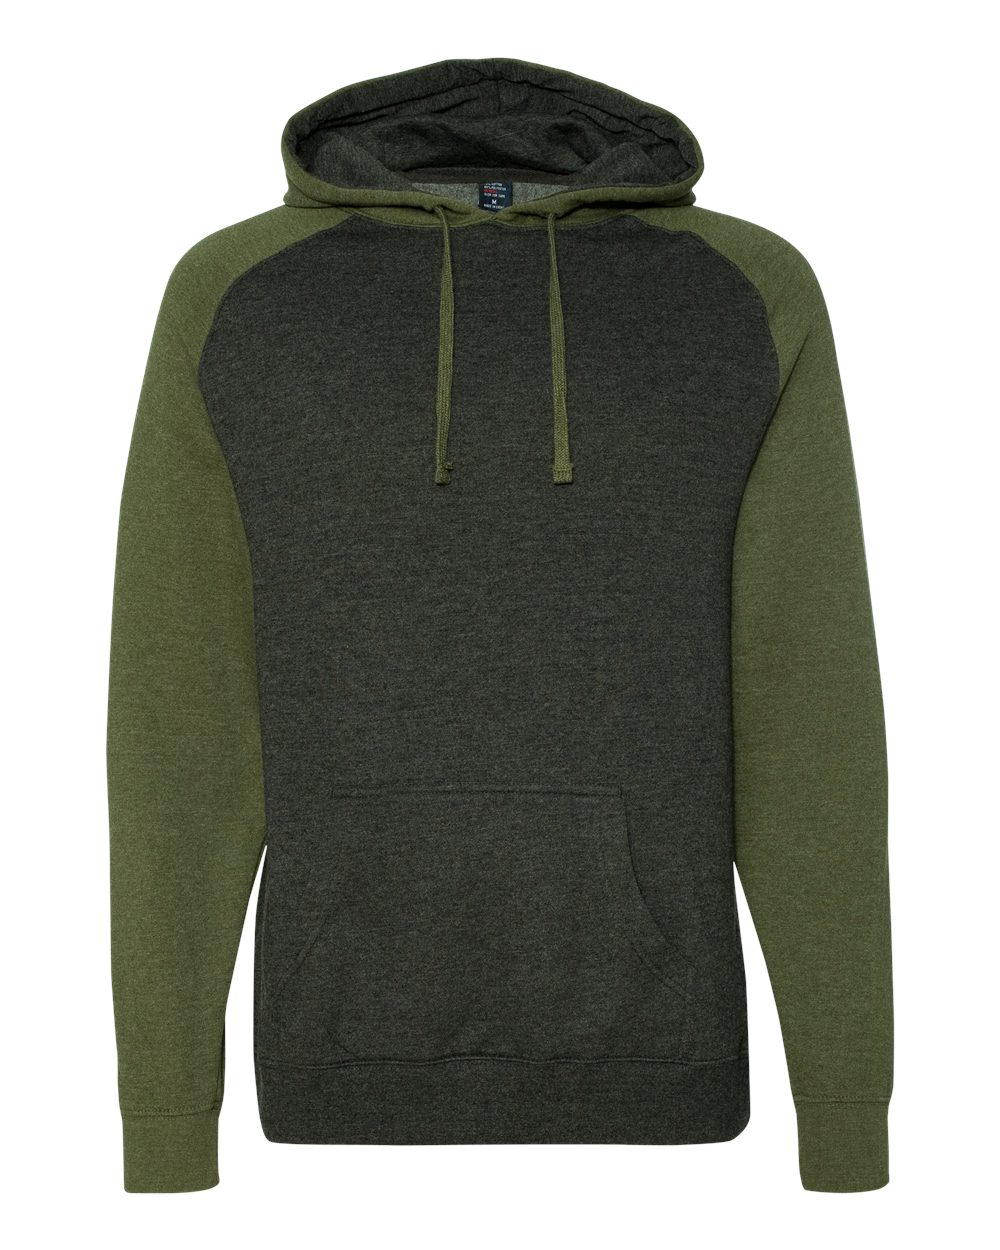 Independent-Trading-Co-Mens-Raglan-Hooded-Pullover-Sweatshirt-IND40RP-up-to-3XL miniature 6